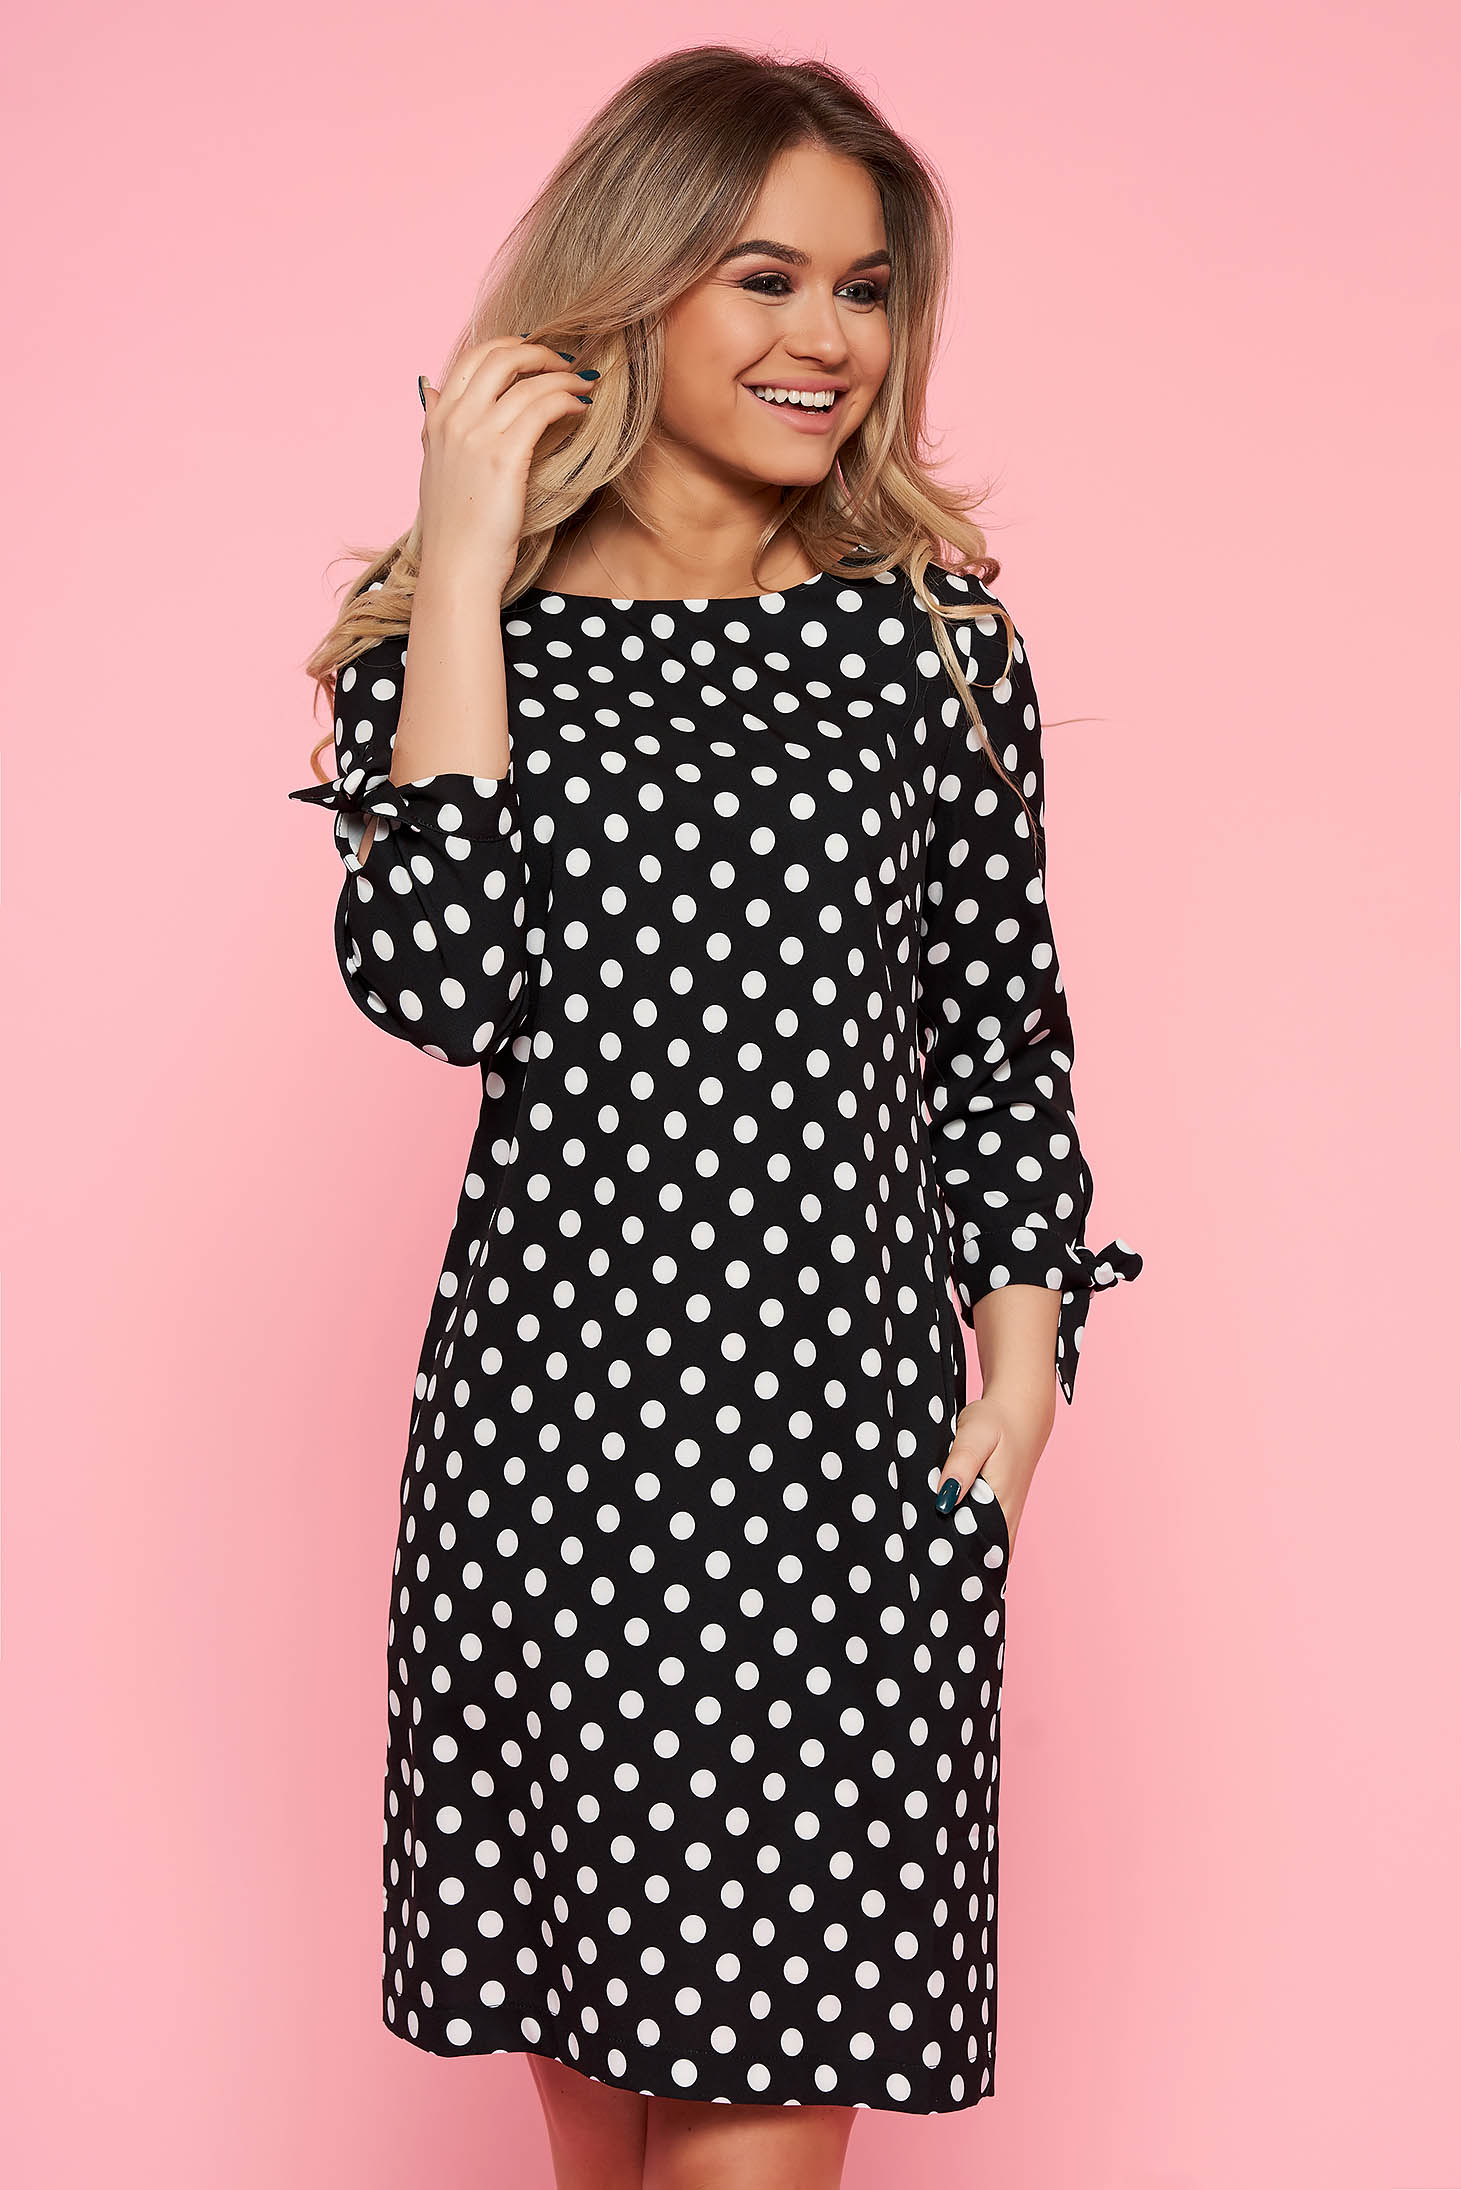 Top Secret black daily flared dress nonelastic fabric dots print 3/4 sleeve